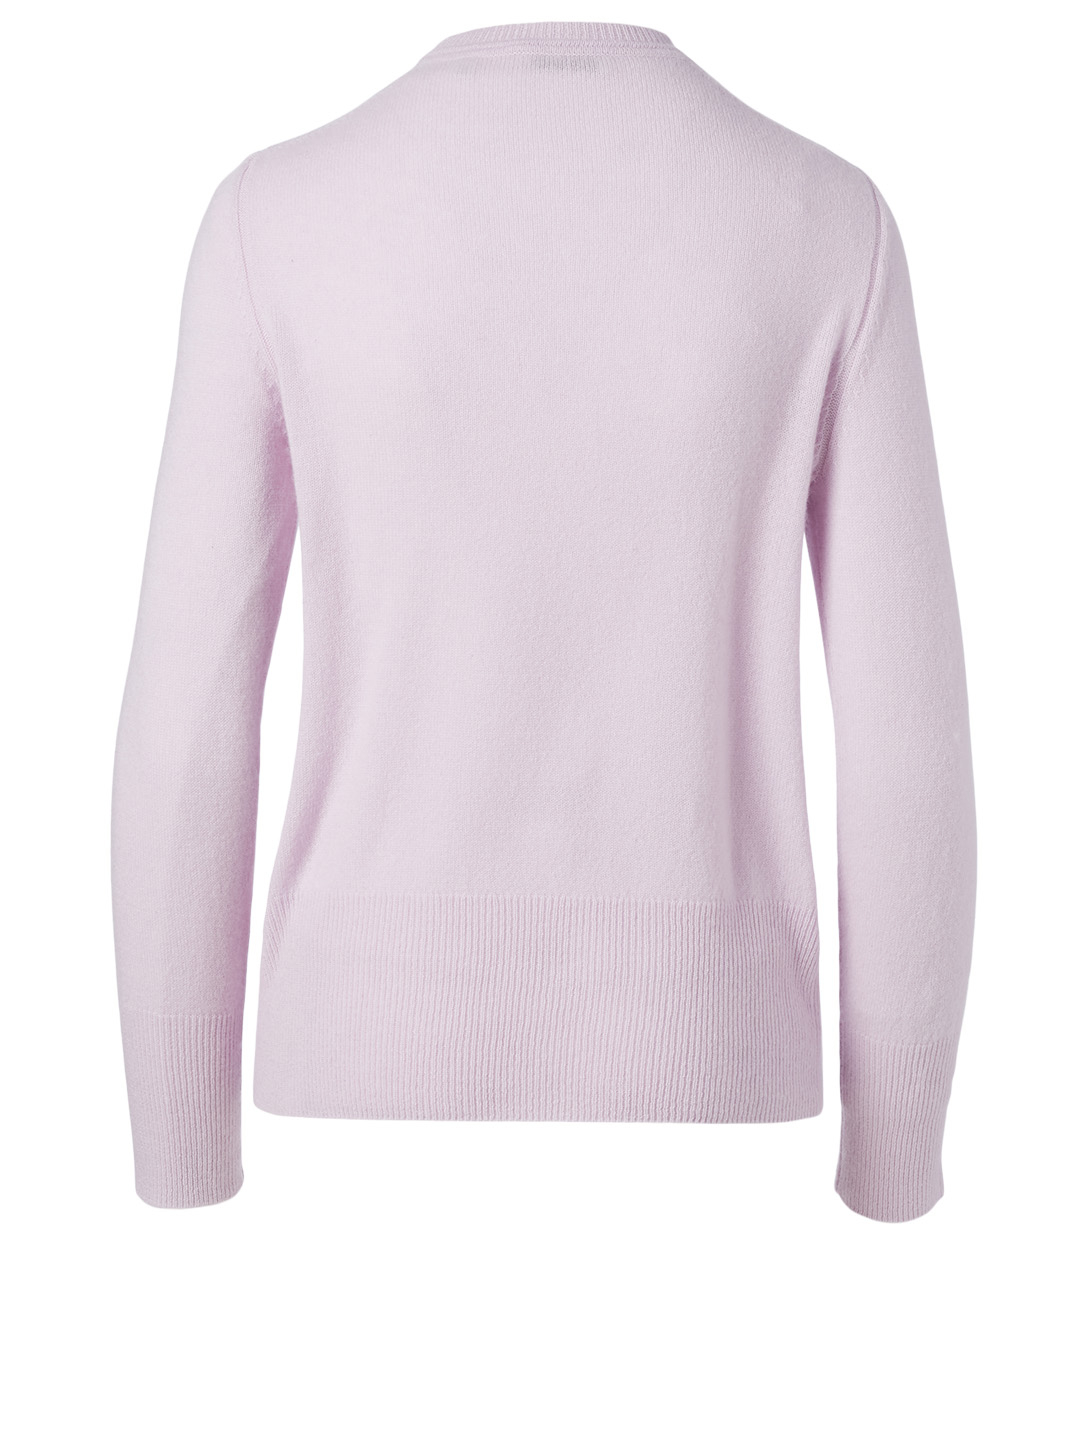 EQUIPMENT Sanni Cashmere Sweater Women's Purple